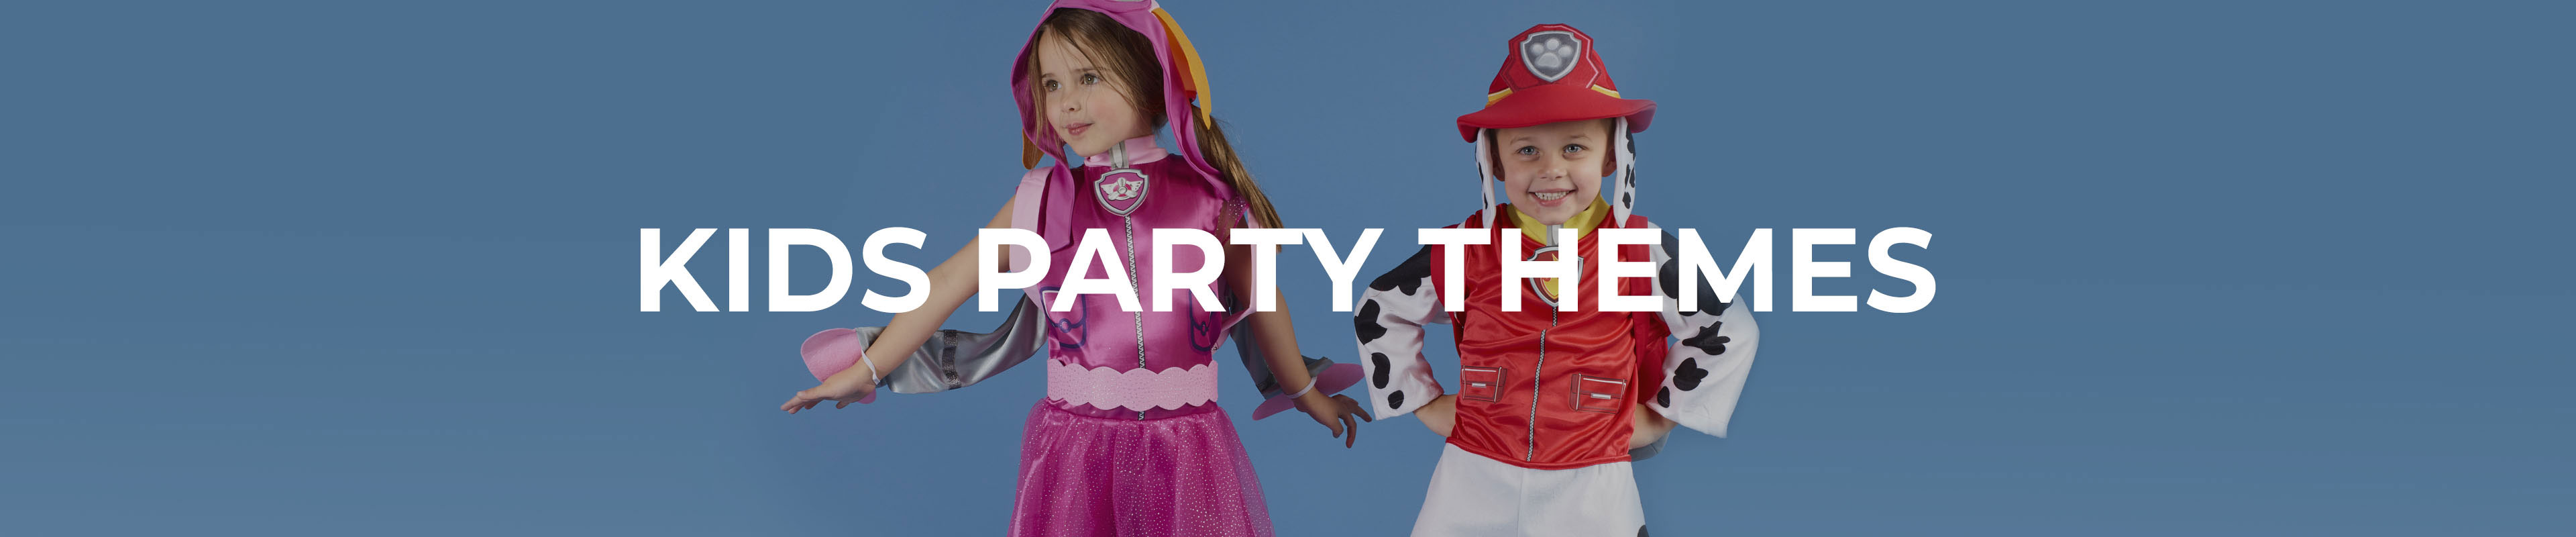 Shop Our Kids Party Themes Range